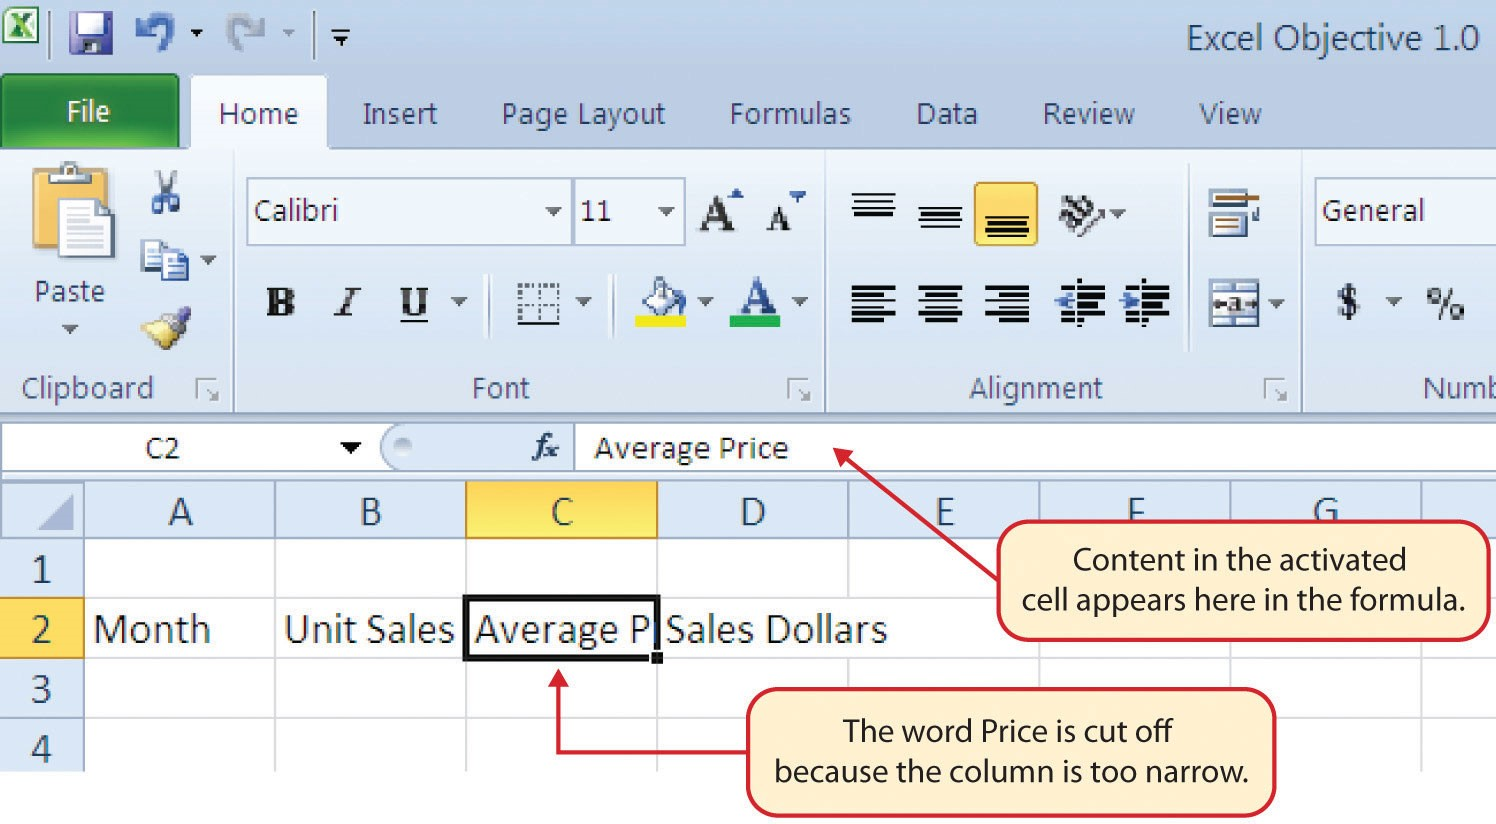 """Cell C2 activated with """"Average Price"""" in formula displayed as """"Average P"""" in cell due to narrow column."""